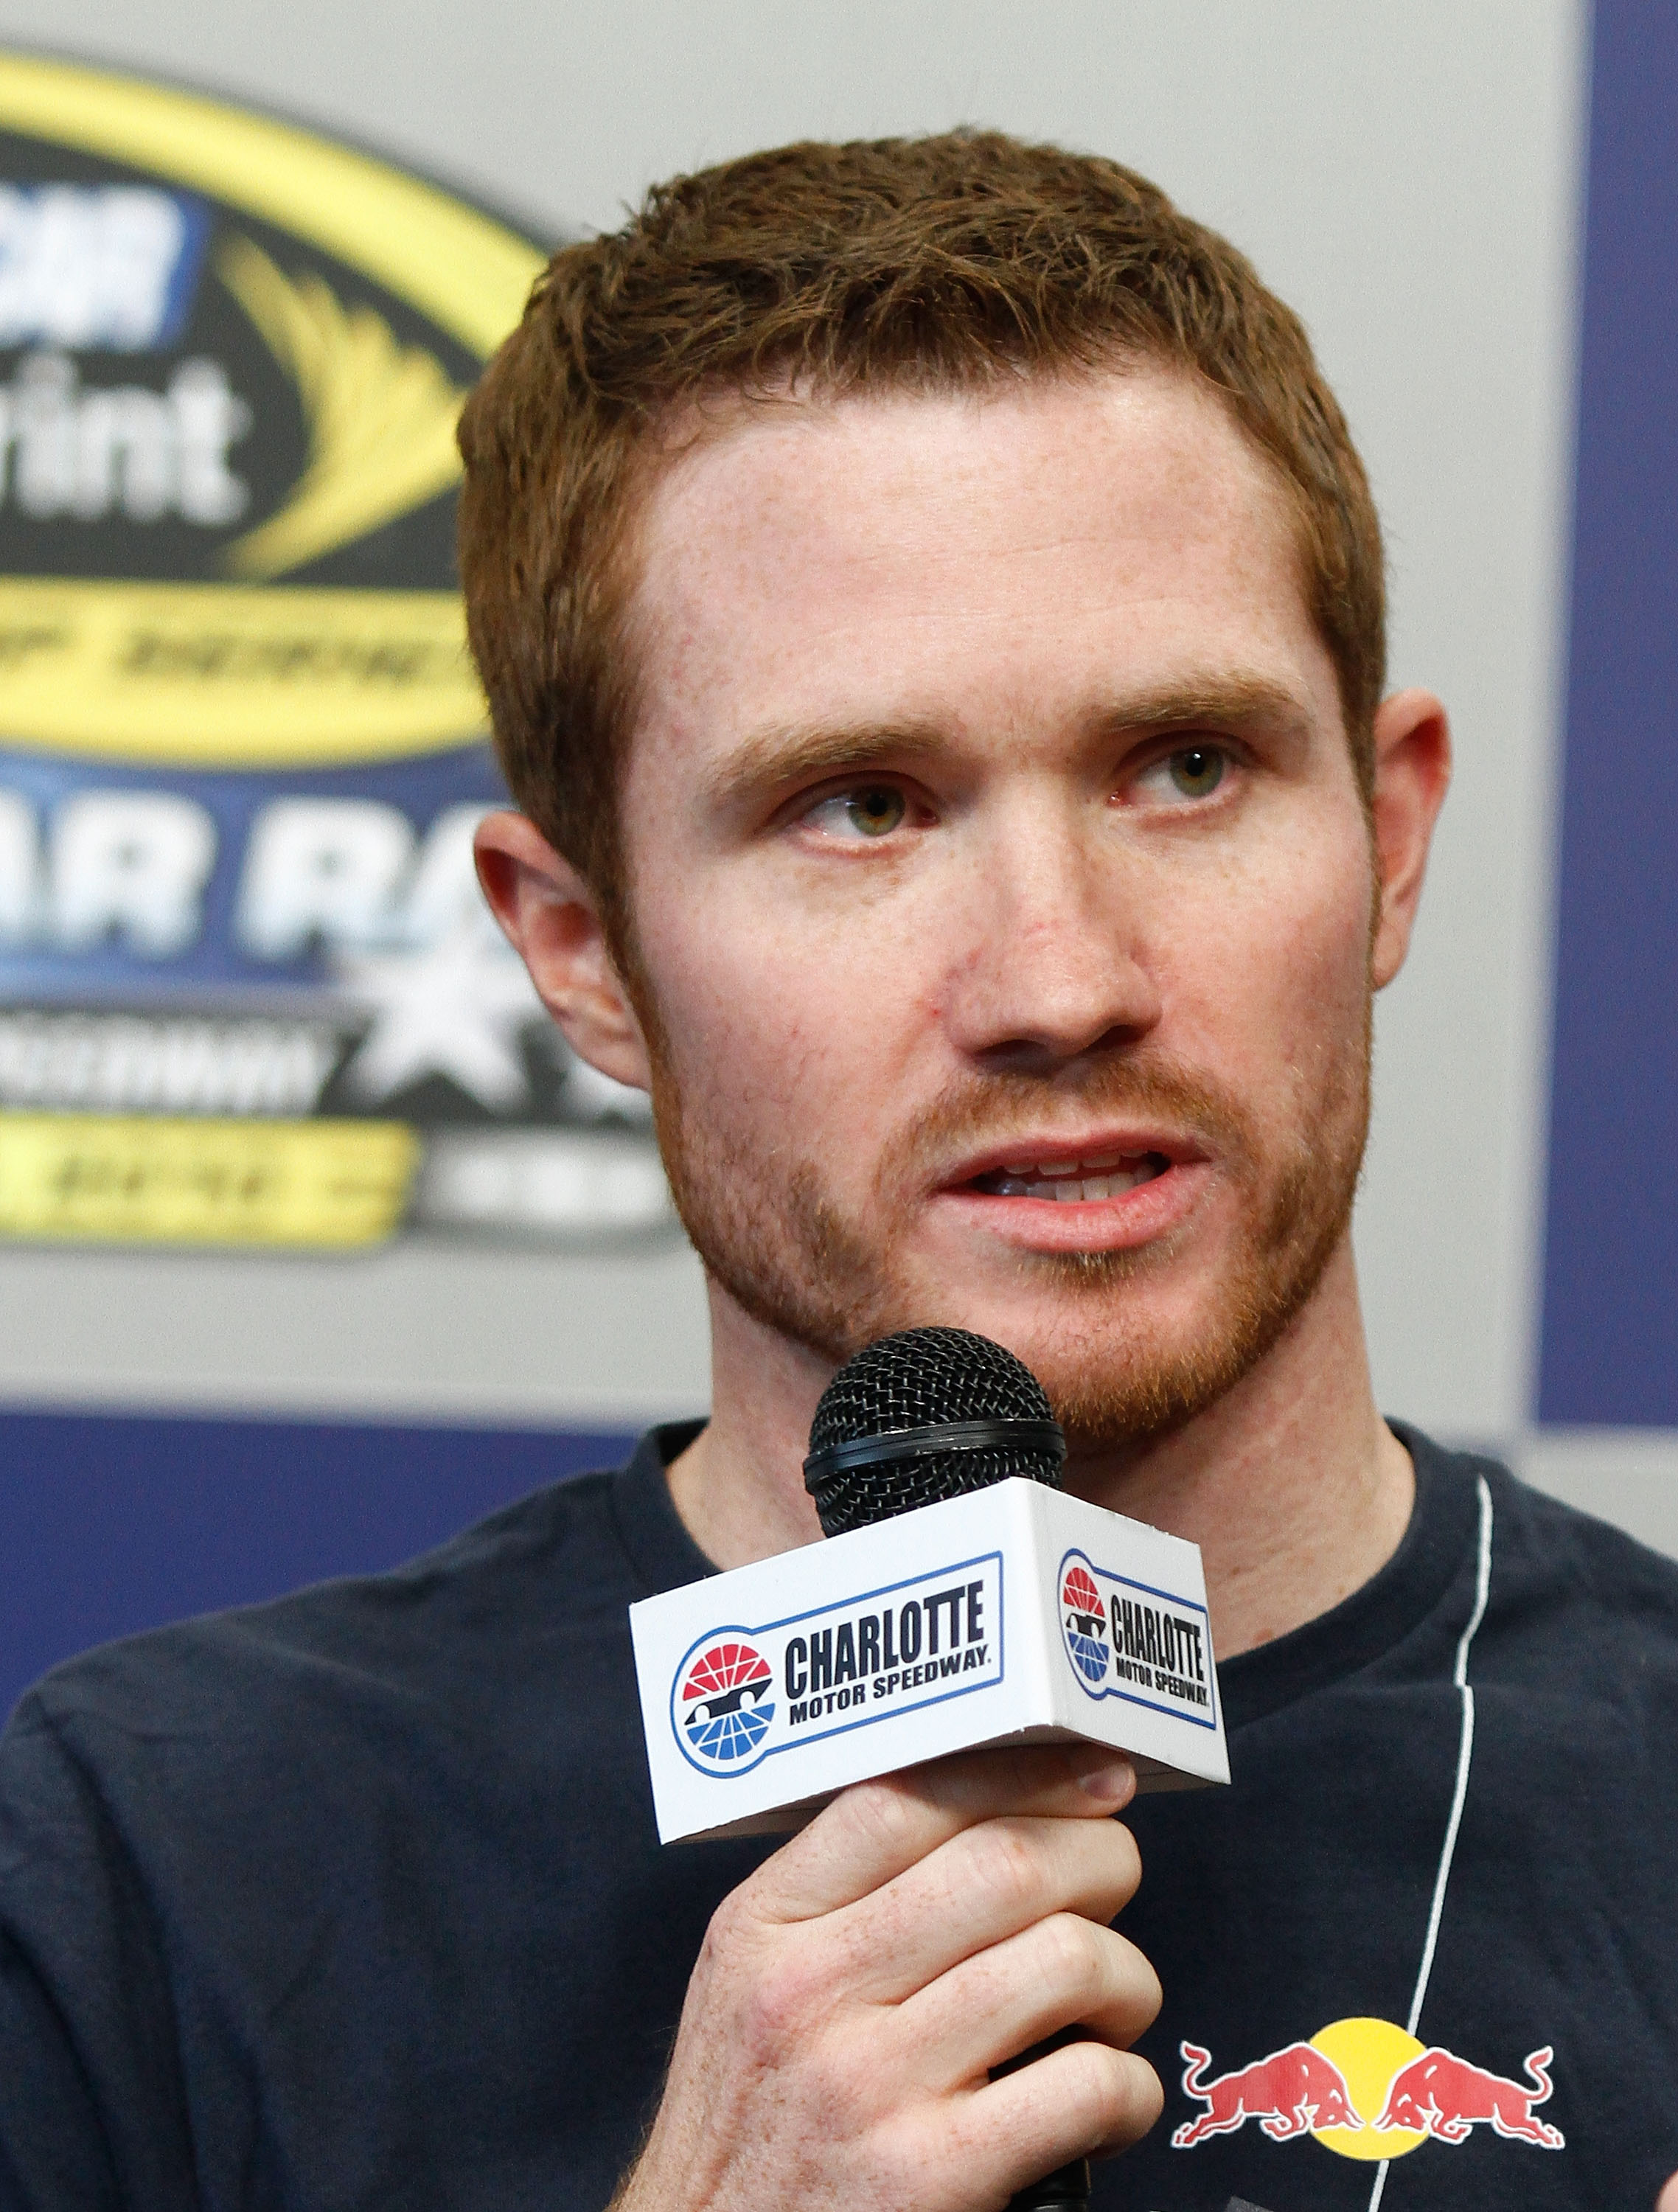 CONCORD, NC - MAY 21:  Brian Vickers, driver of the #83 Red Bull Toyota, speaks to the media during a press conference at Charlotte Motor Speedway on May 21, 2010 in Concord, North Carolina. Vickers will miss the remainder of the NASCAR season because of